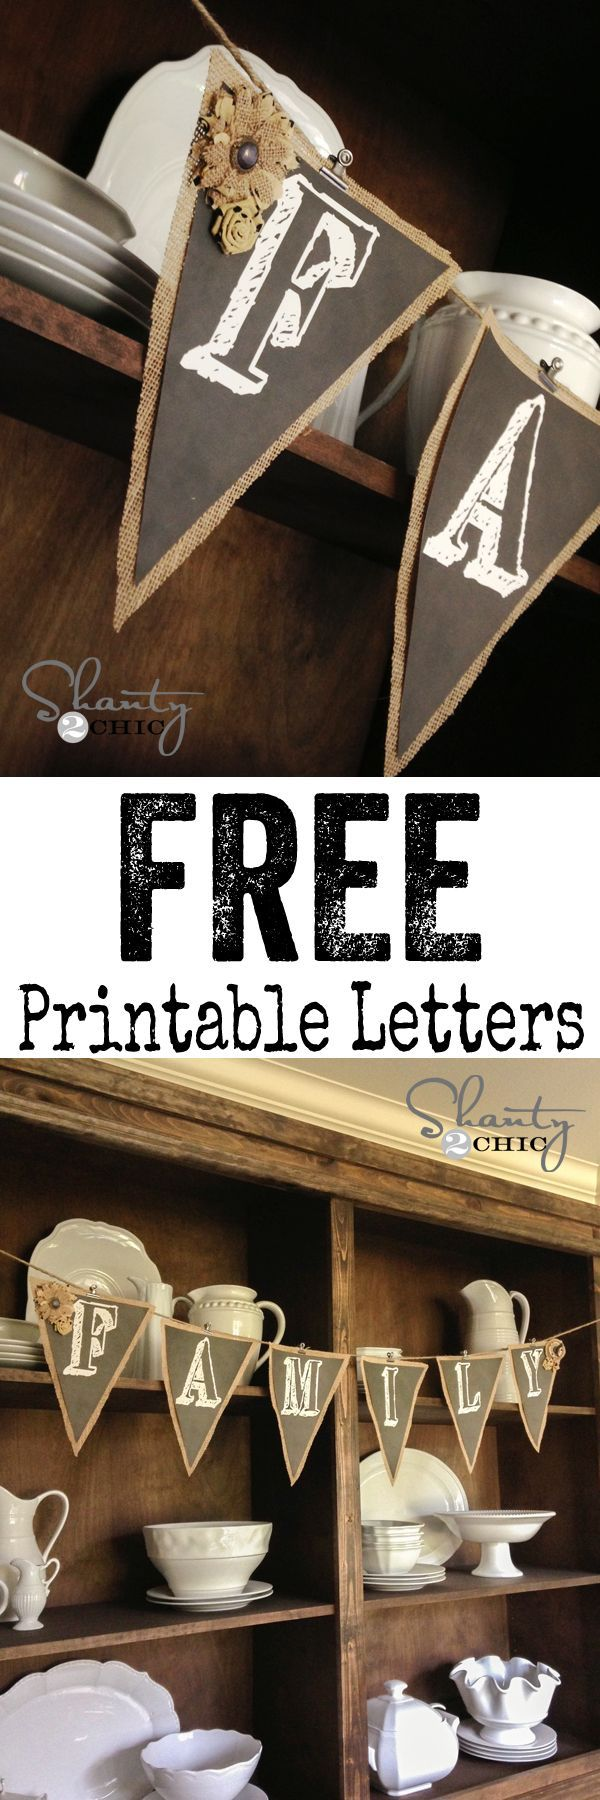 Super cute FREE Printable Banner Letters!  You can print any letter in the alphabet!